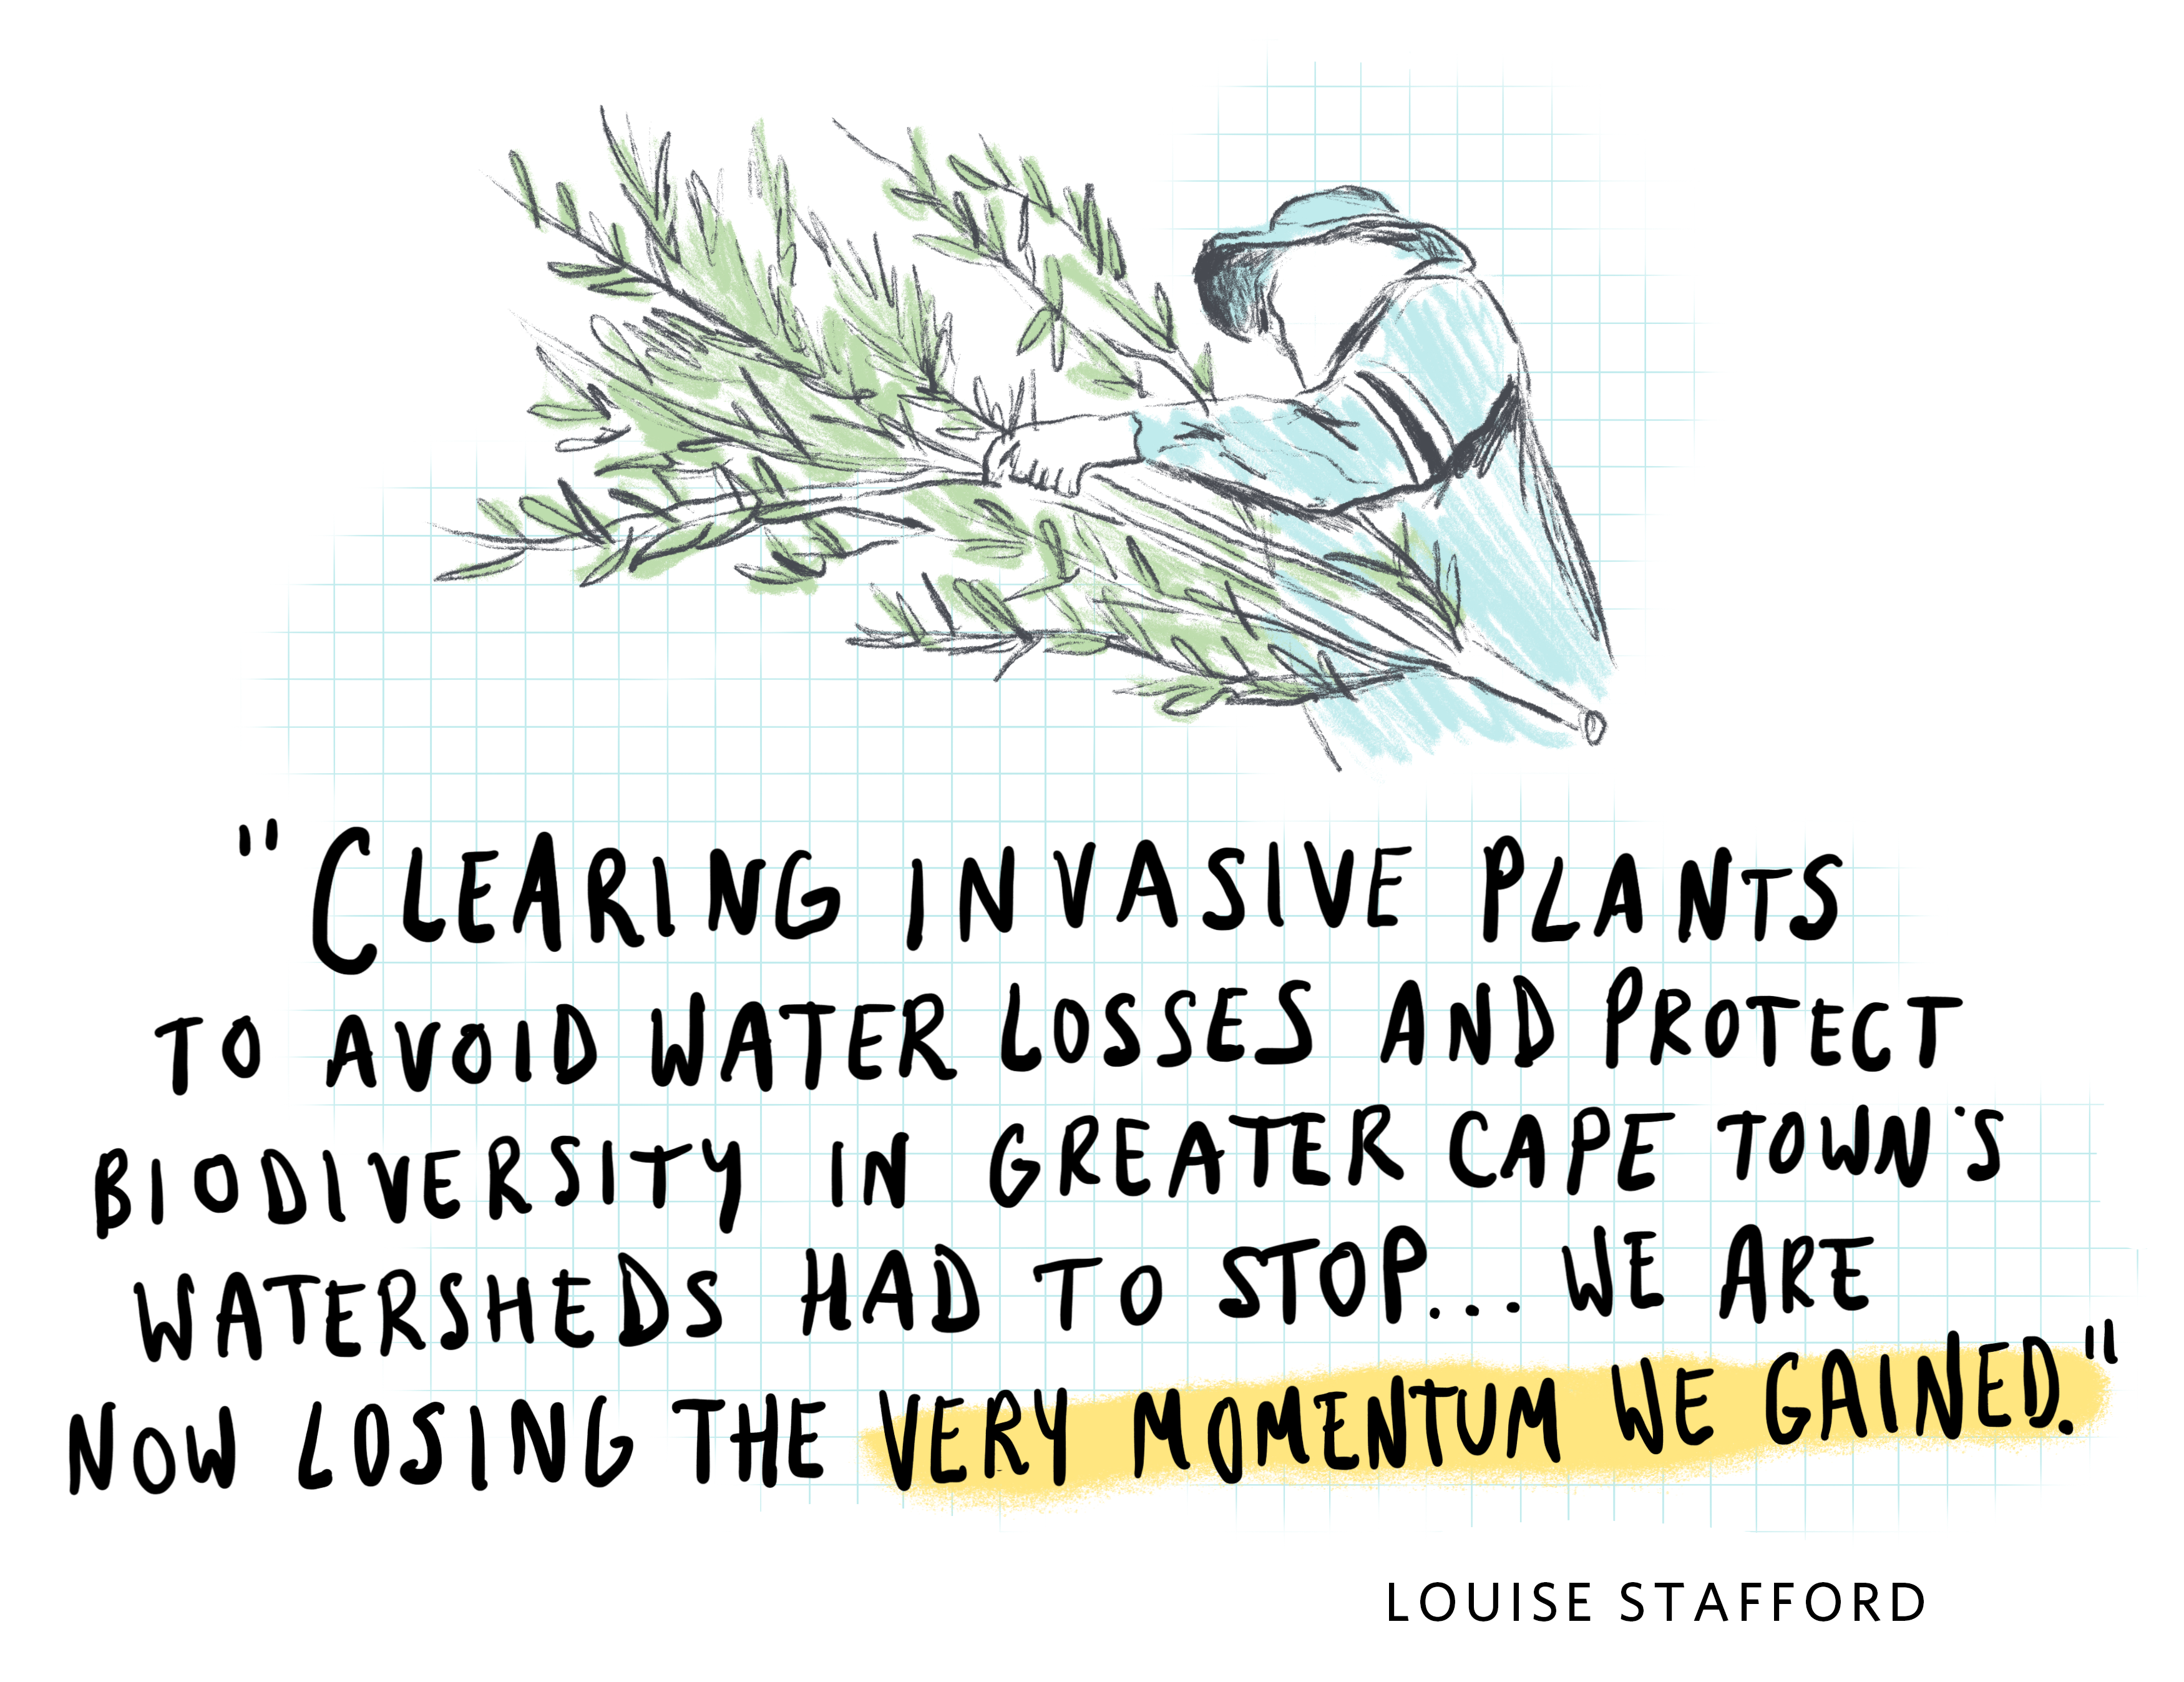 a sketchy illustration of a person carrying tree branches, with a handwritten quote underneath that says 'clearing invasive plants to avoid water losses and protect biodiversity in greater Cape Town's watersheds had to stop...we are now losing the very momentum we gained.'